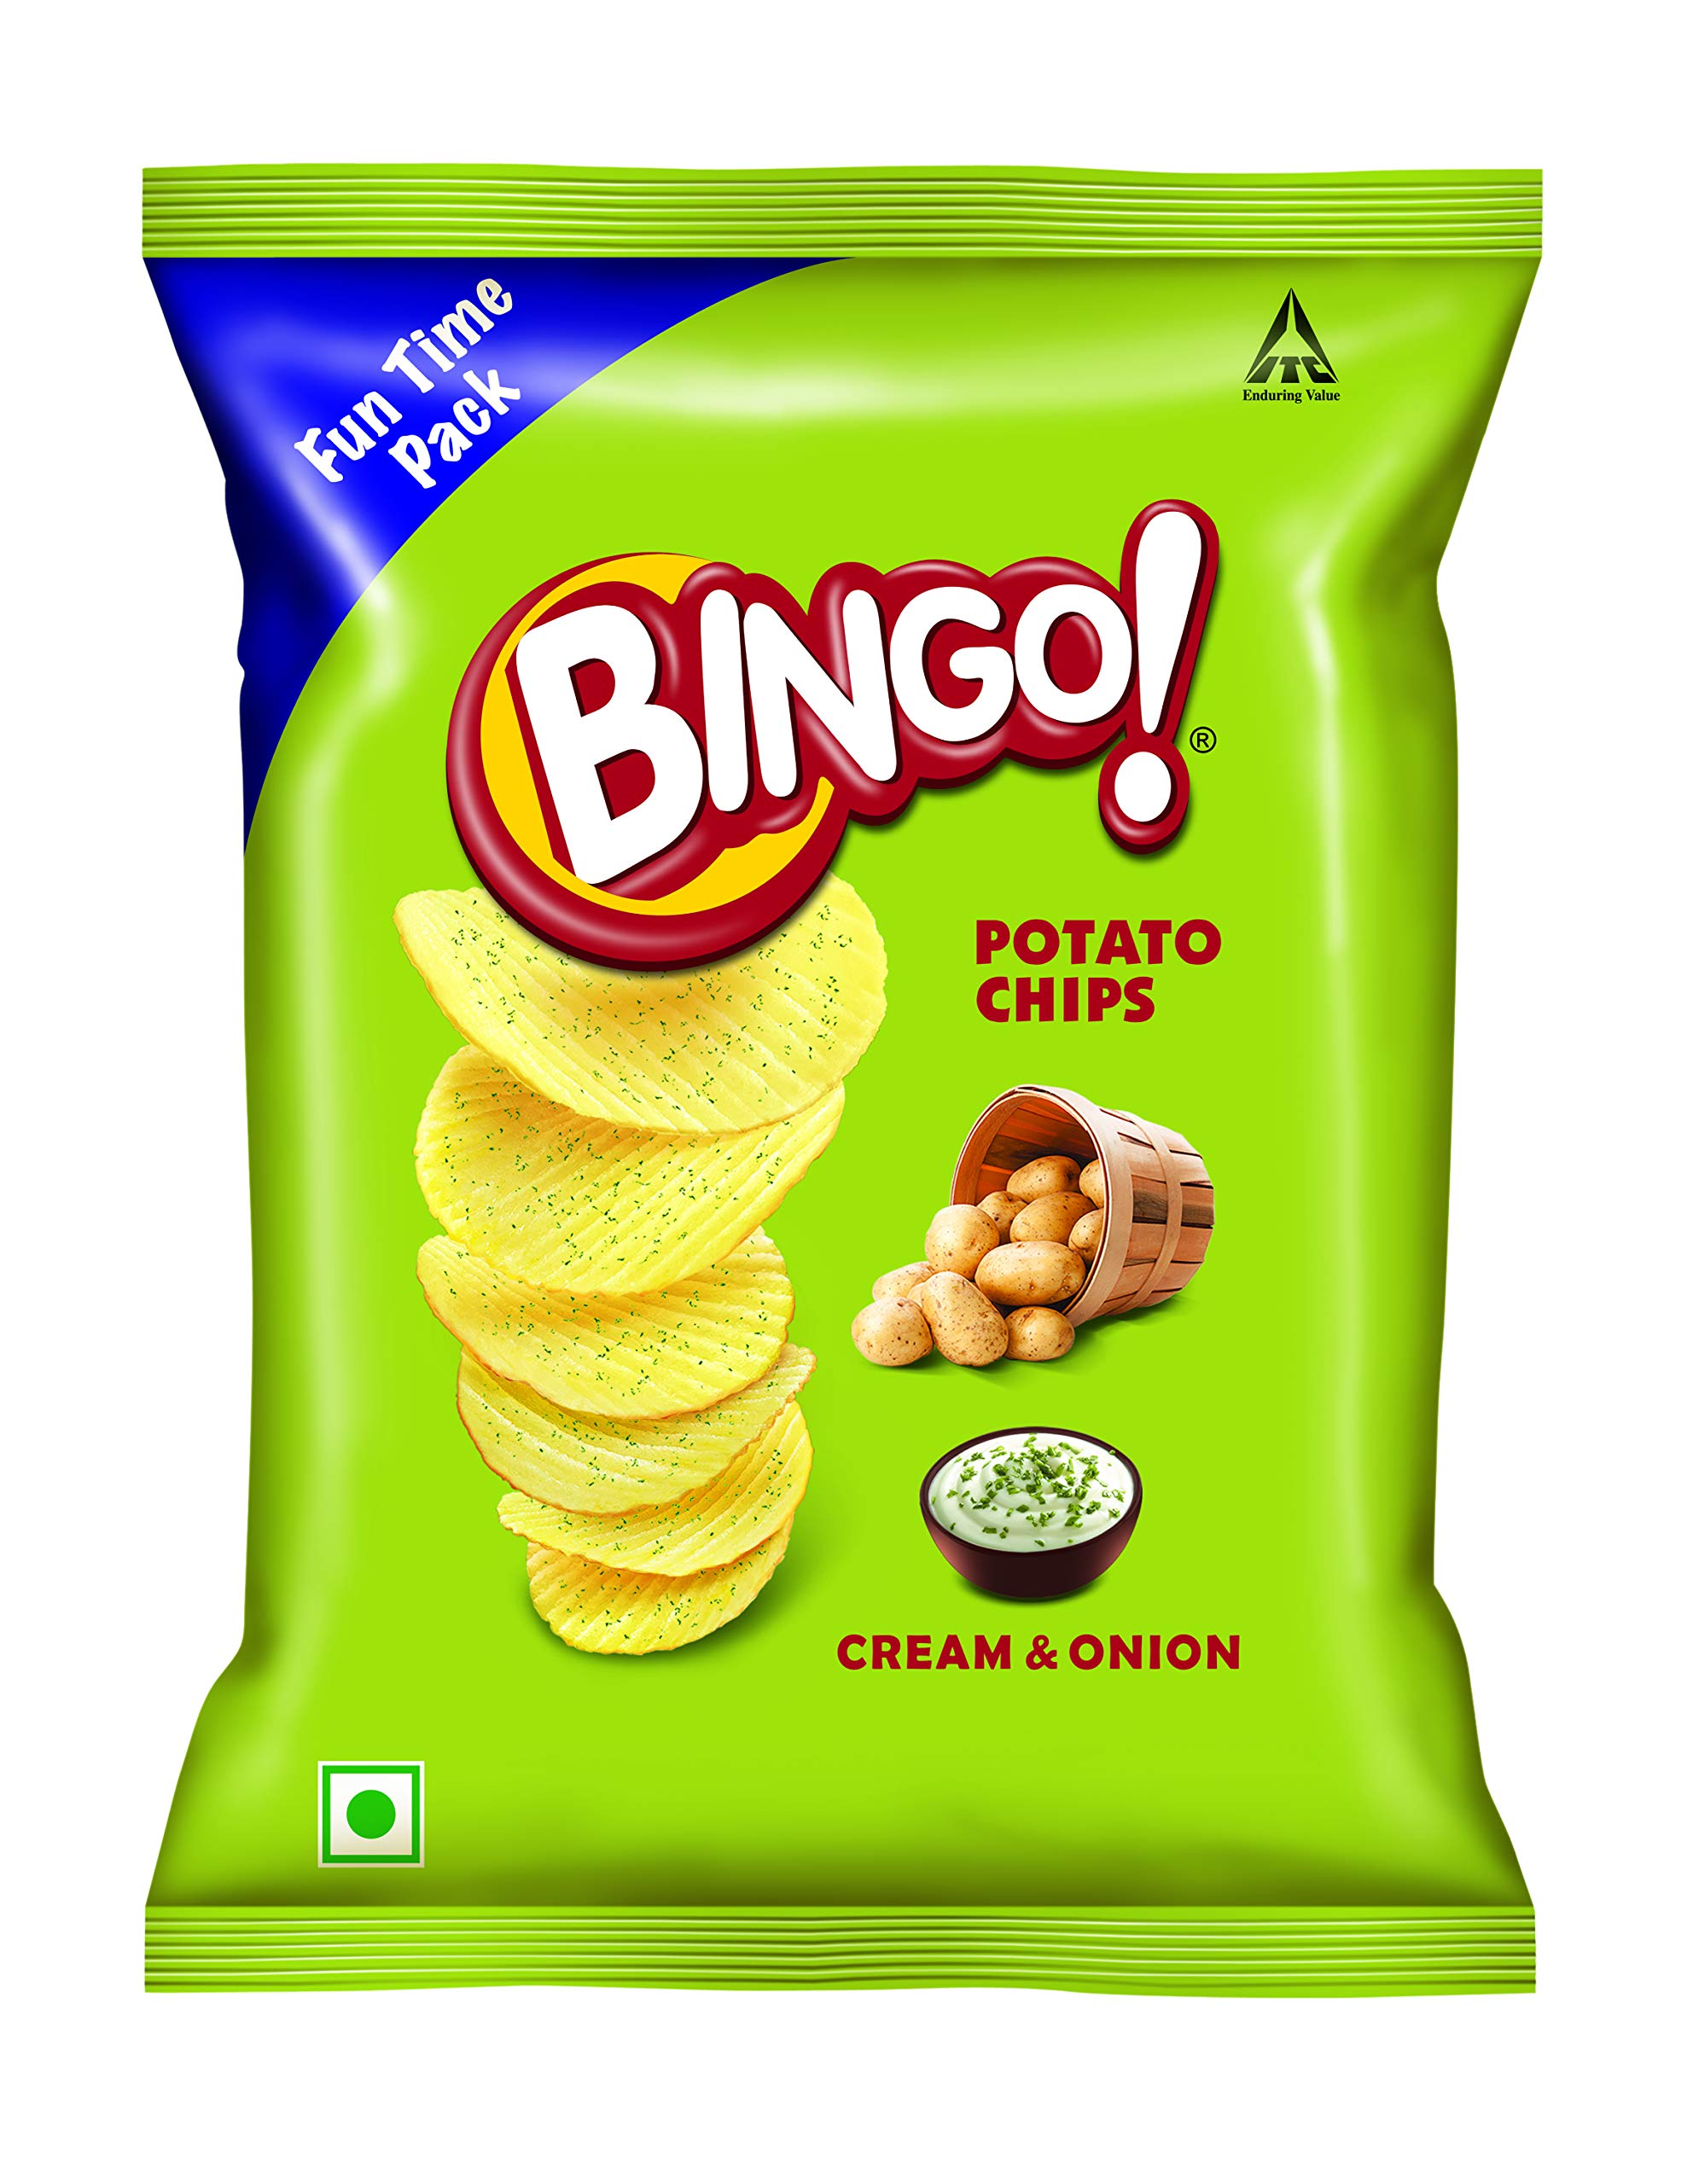 Amazon price history for Bingo Potato Chips Cream & Onion, 130 g